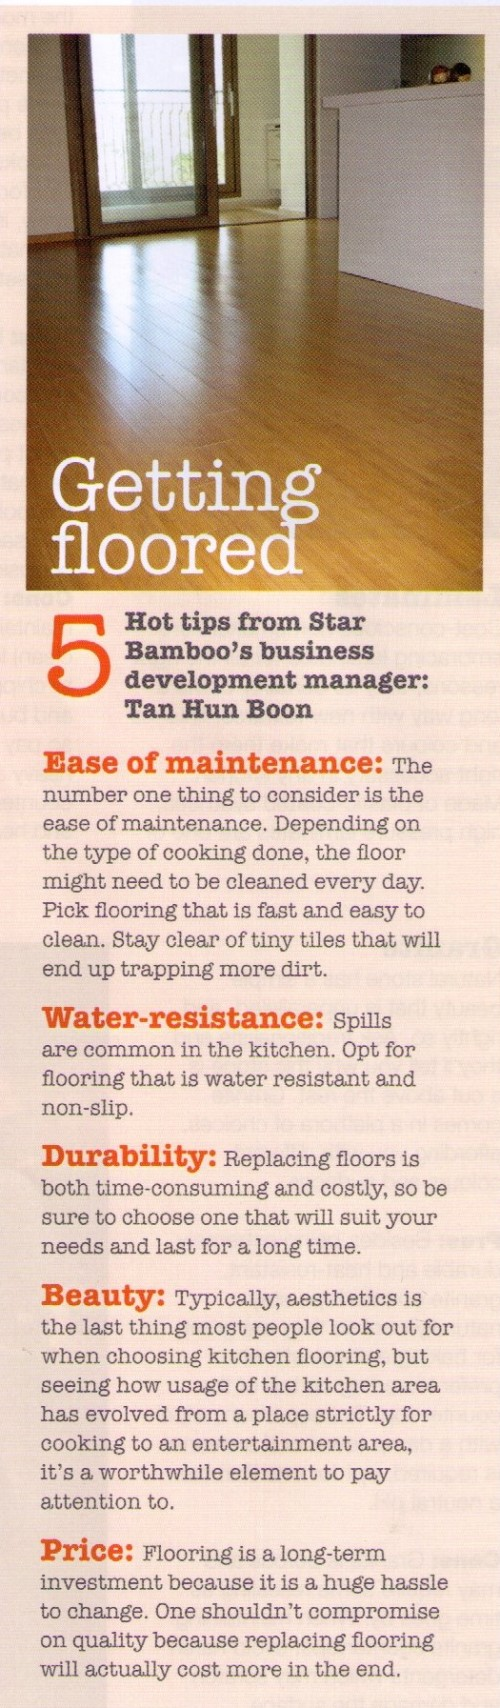 Getting floored - 5 hot flooring tips